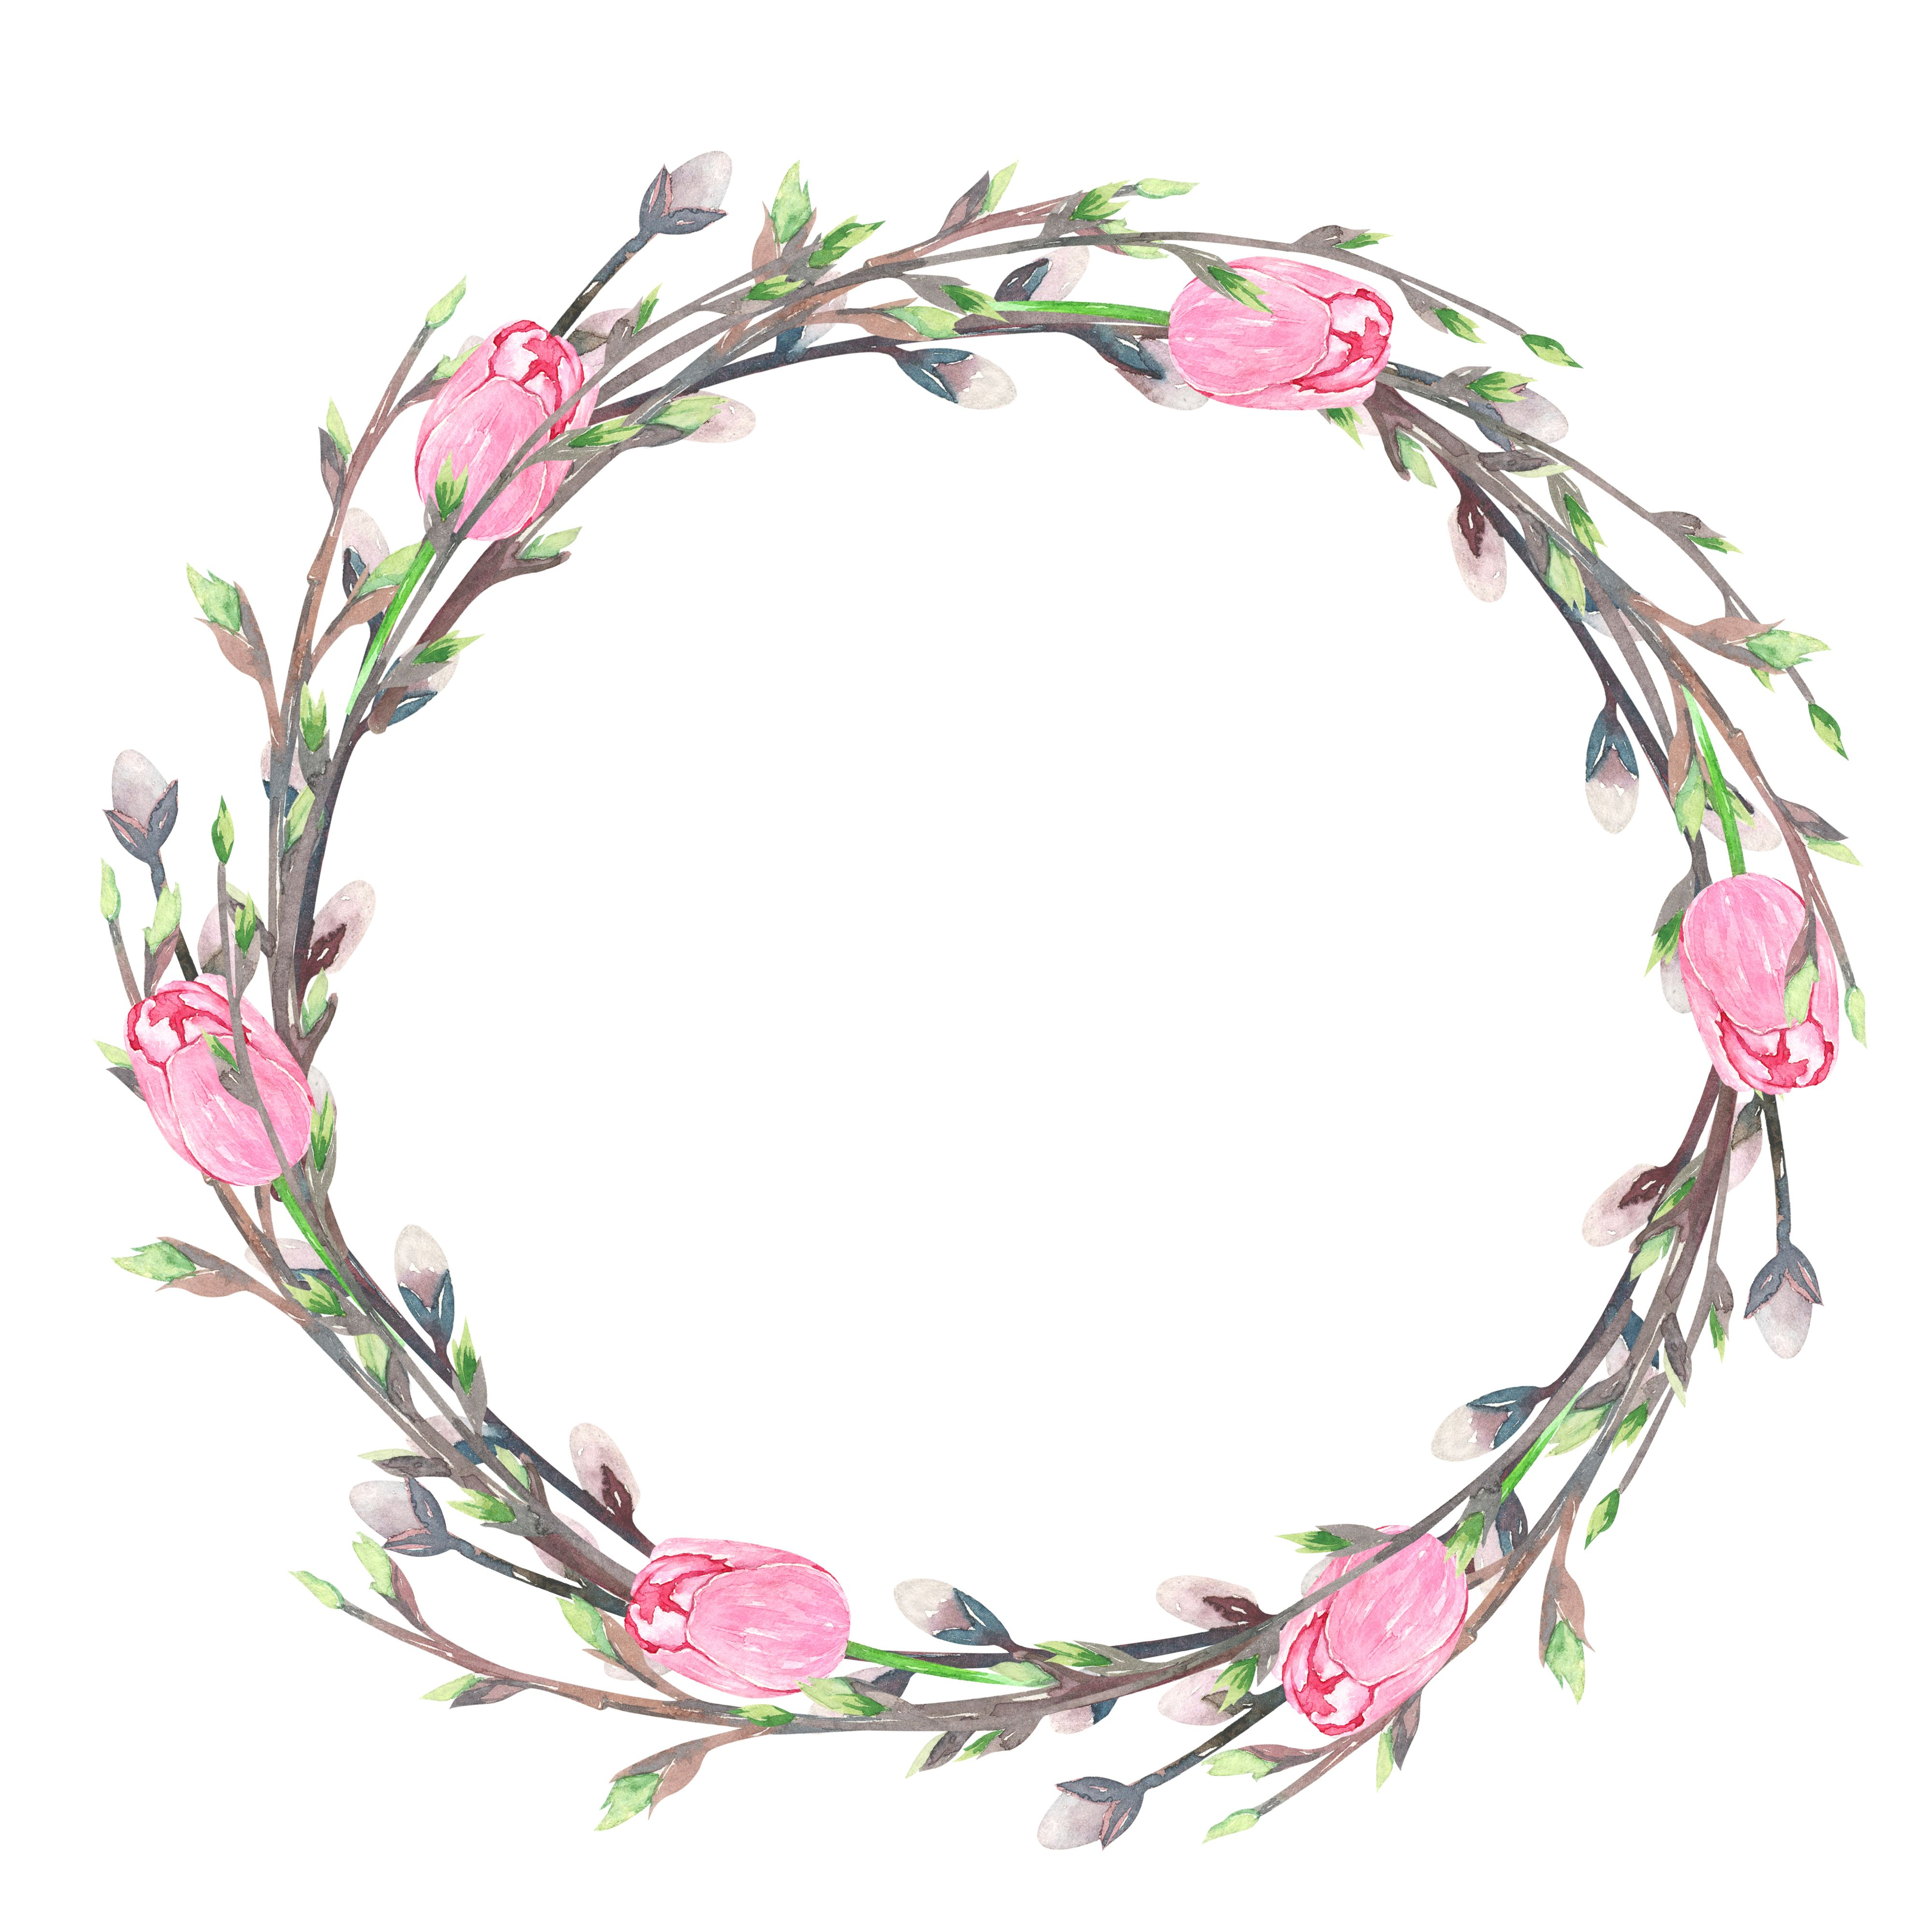 Wreath branches free clipart picture free download watercolor tulips wreath, willow, branches | My watercolor ... picture free download